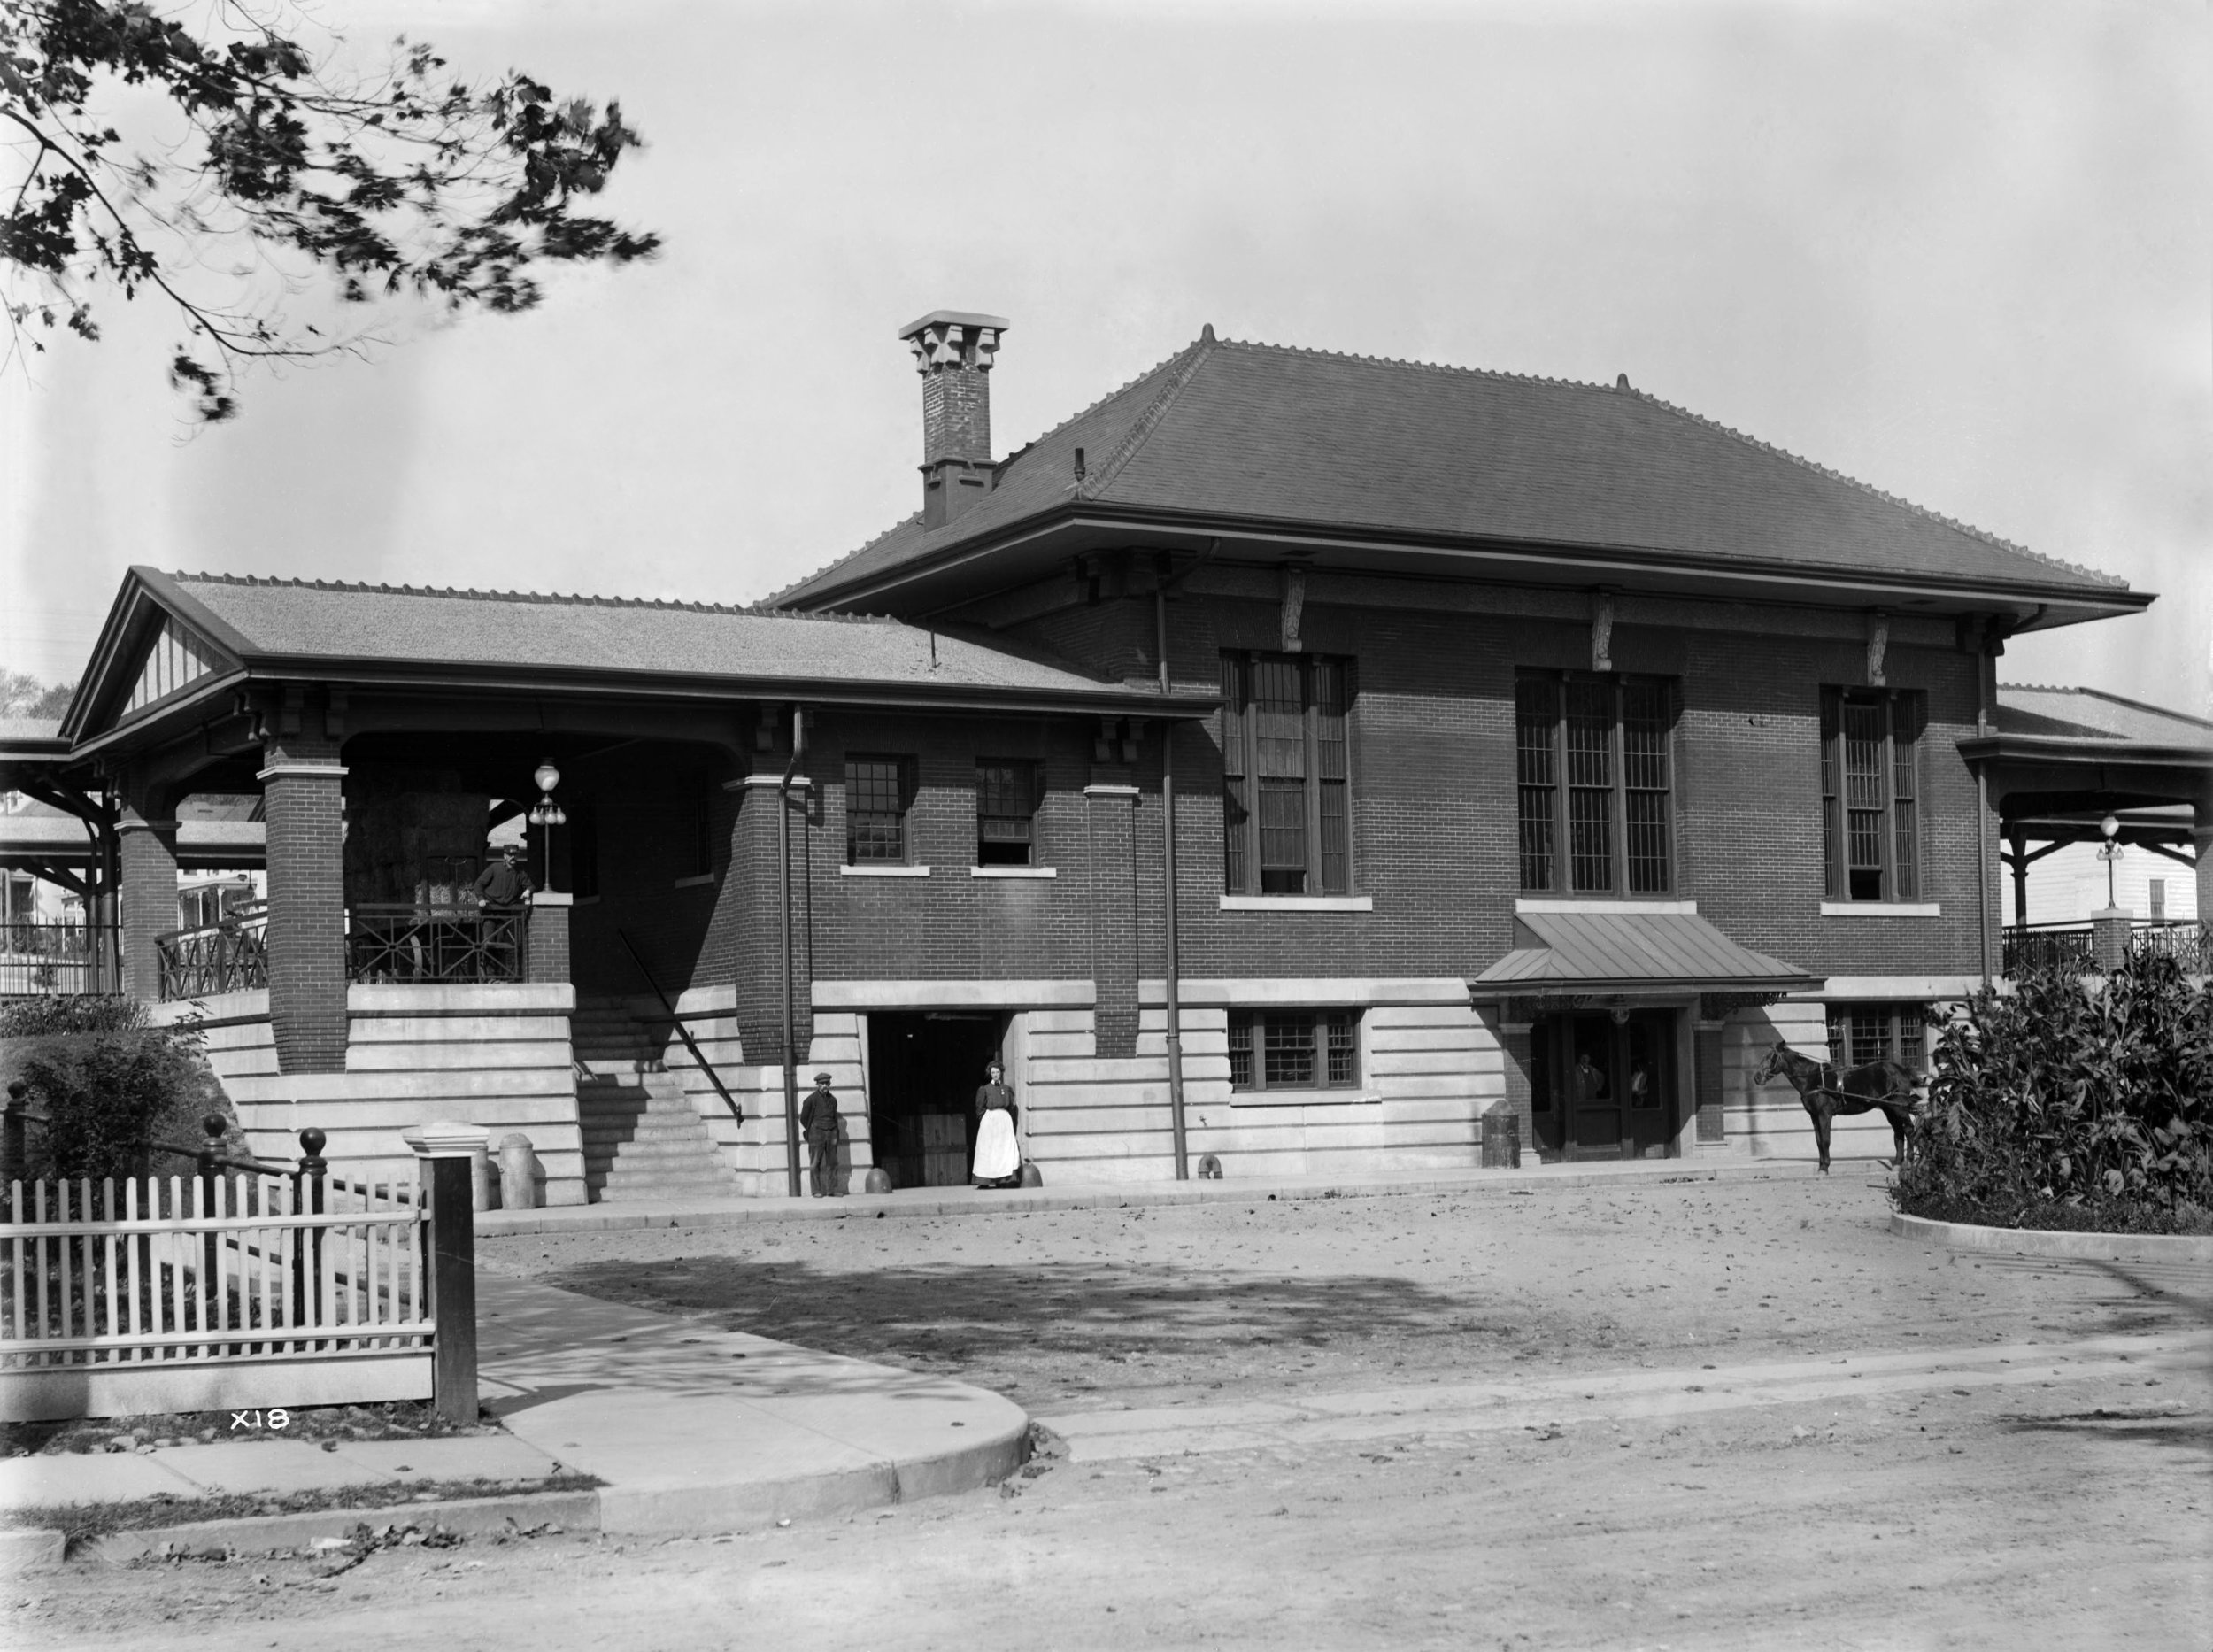 15 DL&W station (X0018 south station building - Boonton, NJ - 1907 - Steamtown coll).jpg